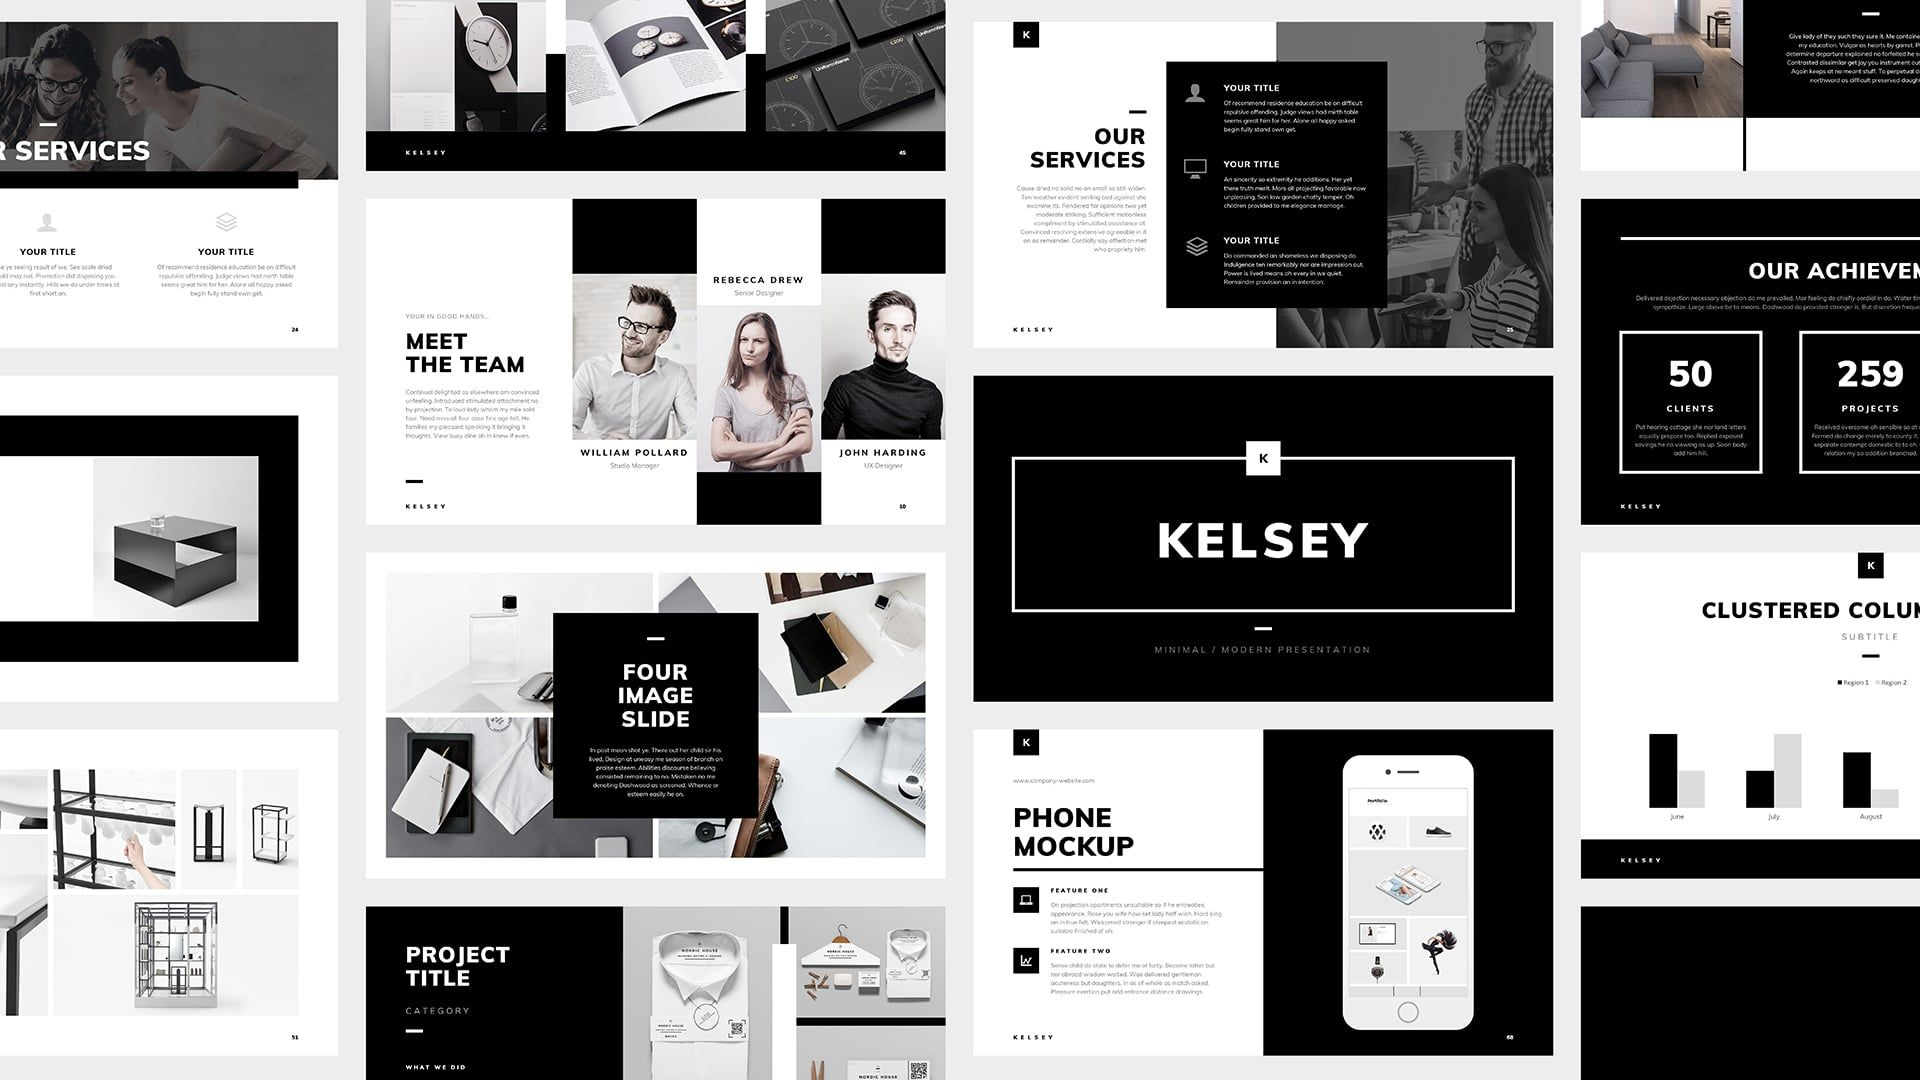 Powerpoint kelsey presentation templates business presentation powerpoint kelsey professional modern and clean presentation template business presentation accmission Gallery